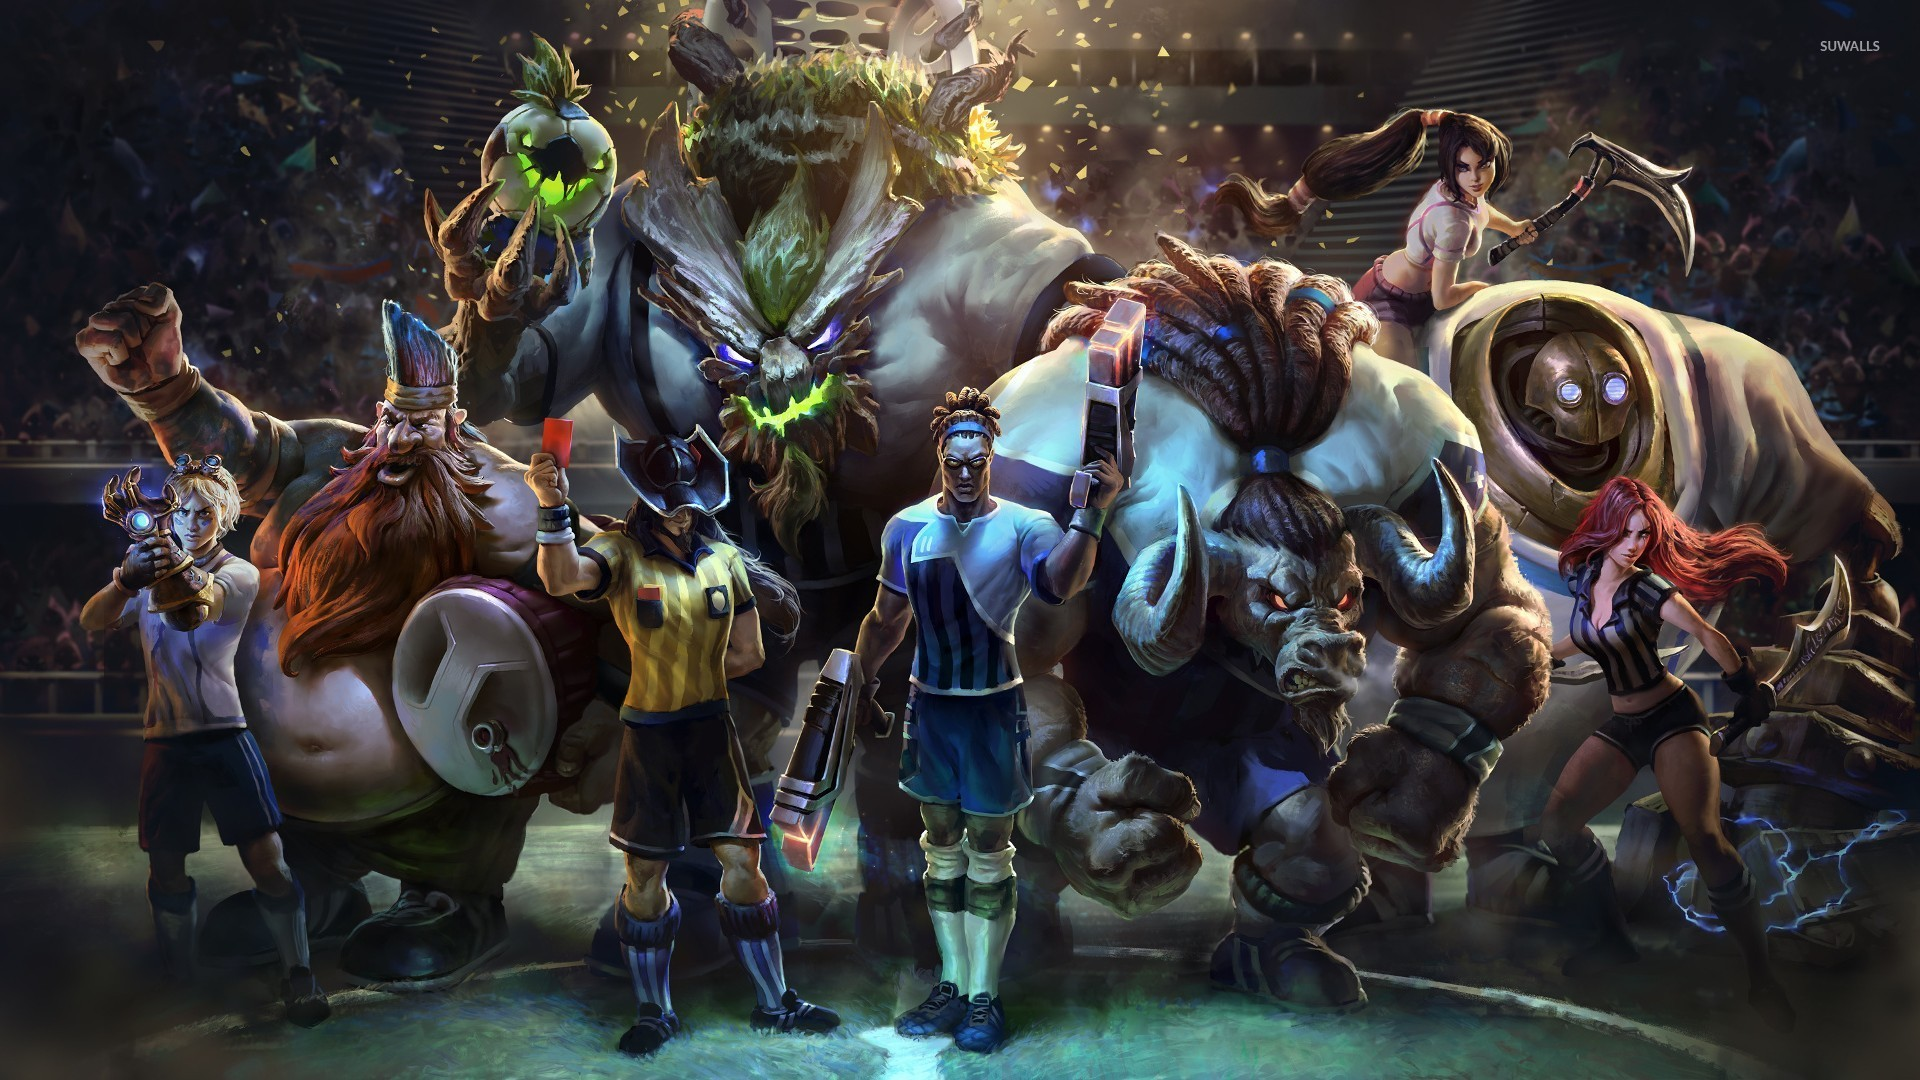 League Of Legends Characters Wallpaper Game Wallpapers 54025